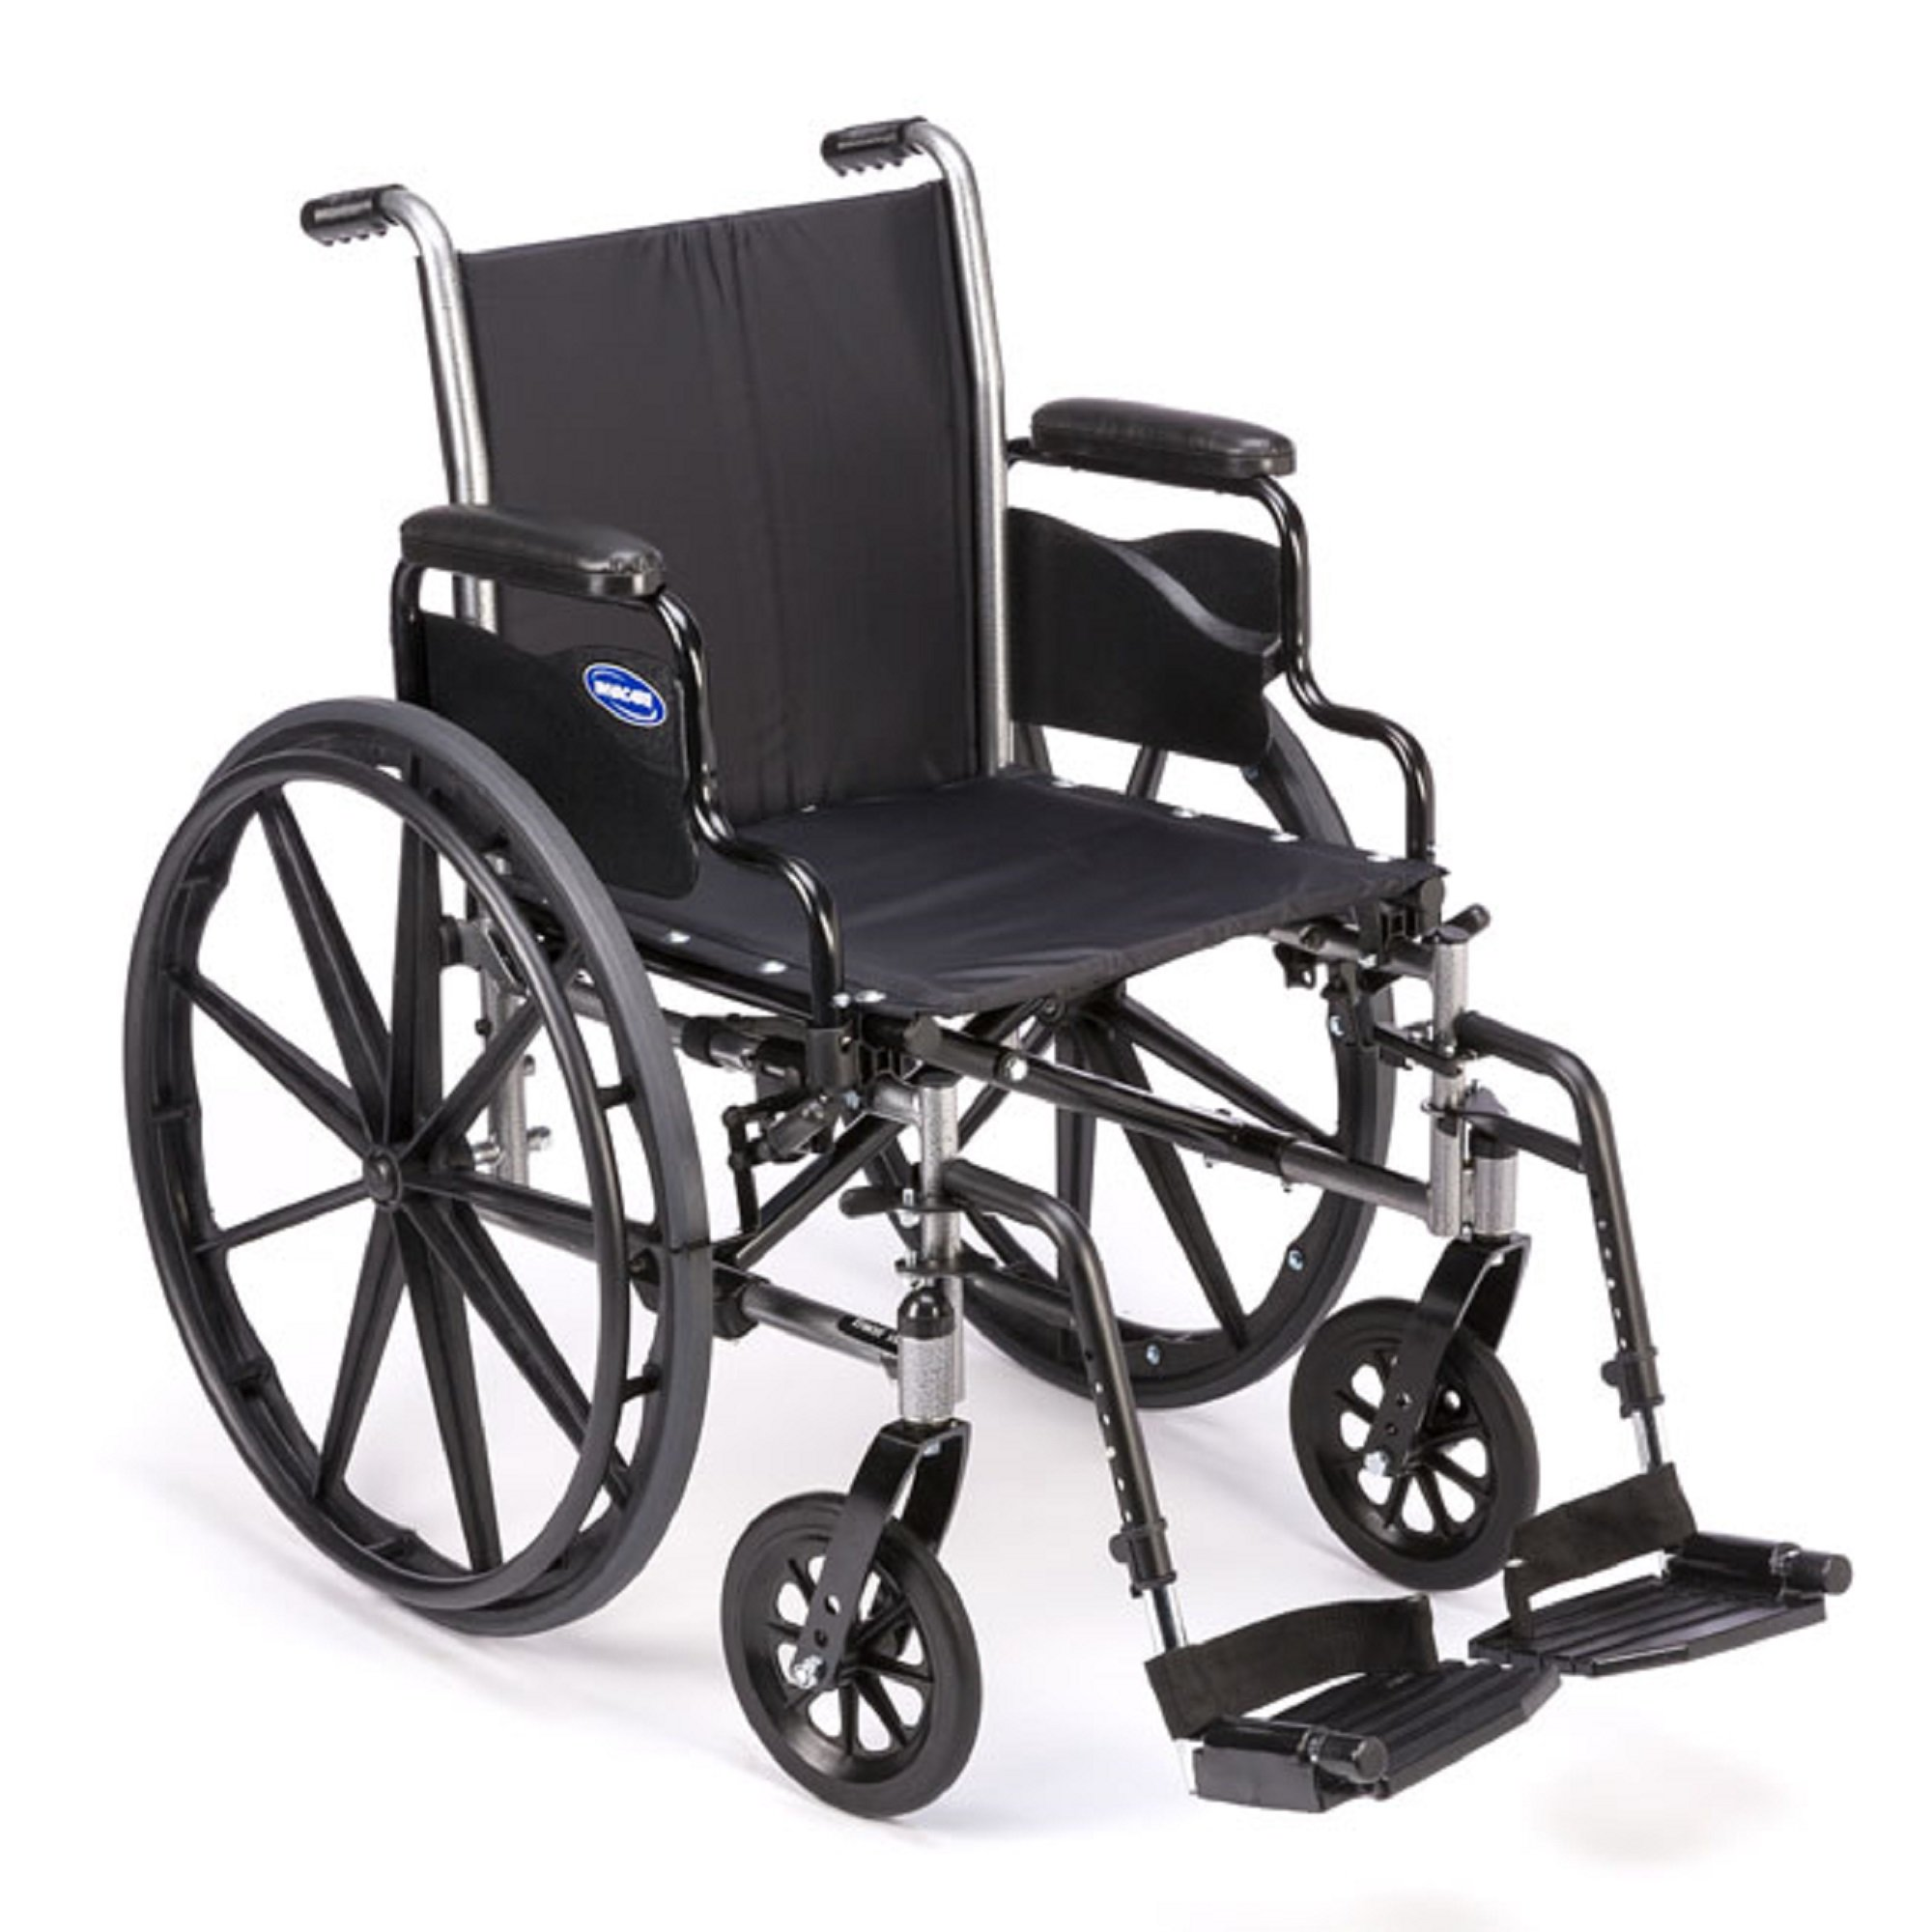 Invacare - Tracer SX5 - Manual Wheelchair - Flip-Back Desk-Length Armrest with Swing Away Footrest - 18'' x 16'' Seat